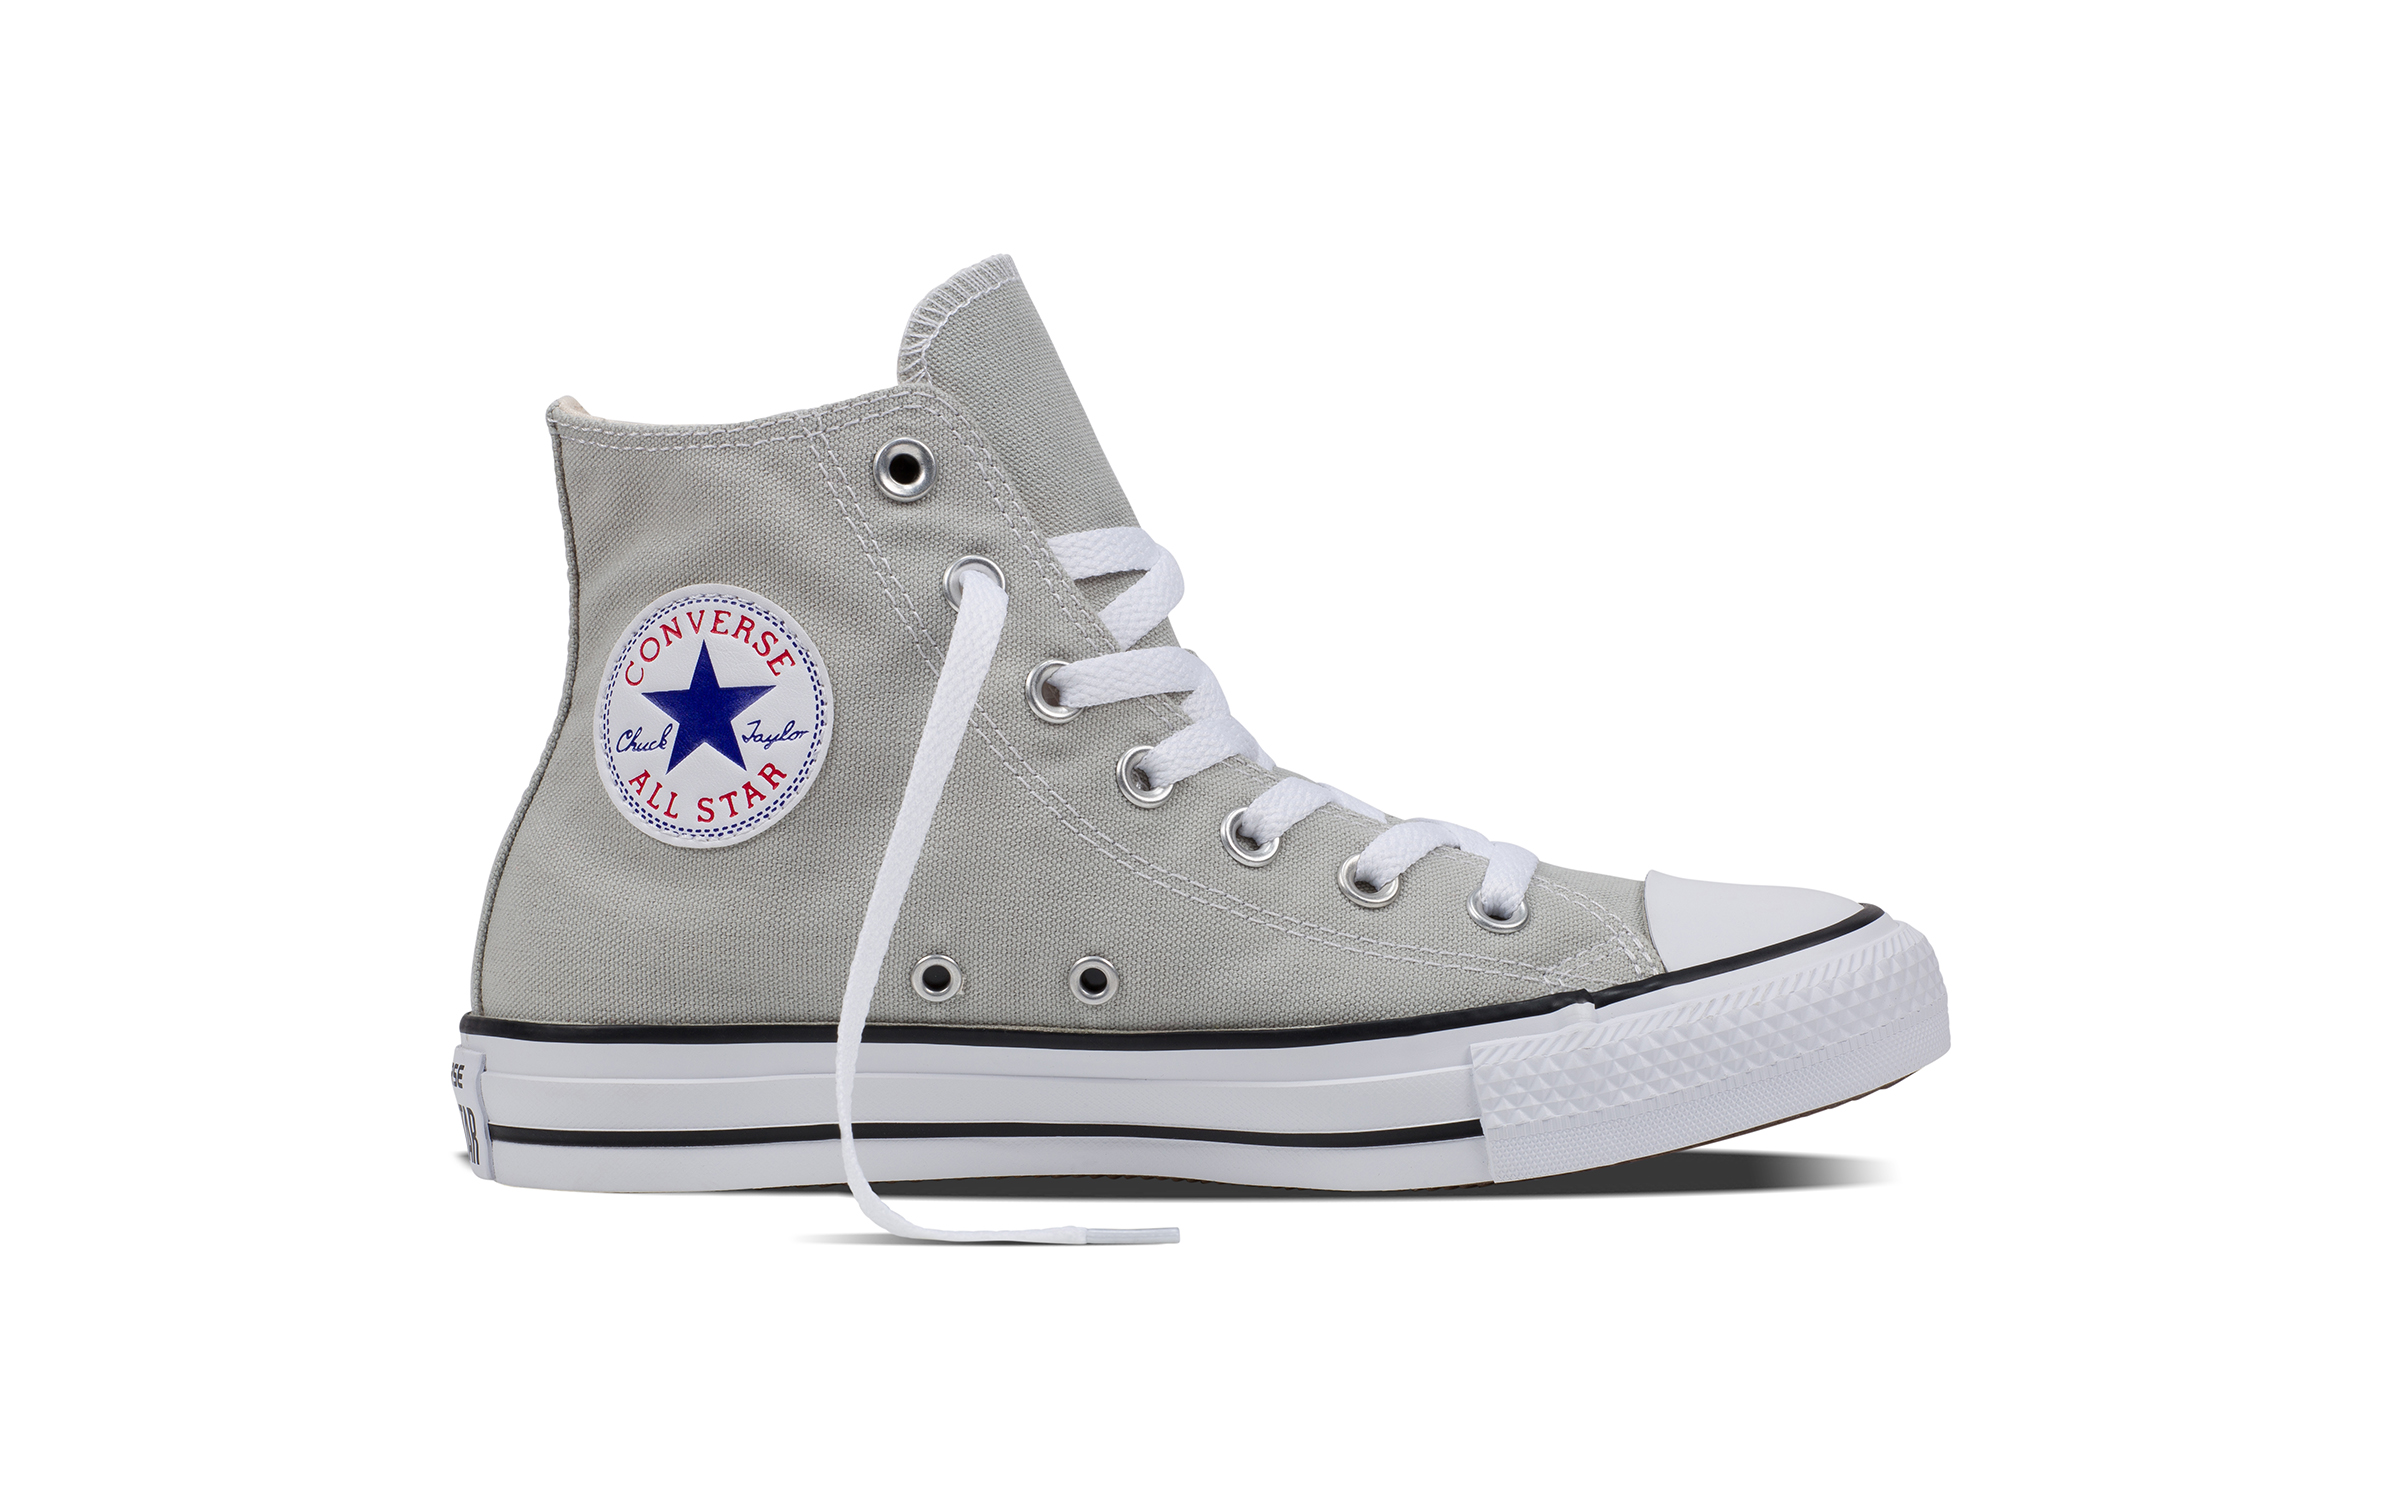 CHUCK TAYLOR ALL STAR HI LIGHT GREY